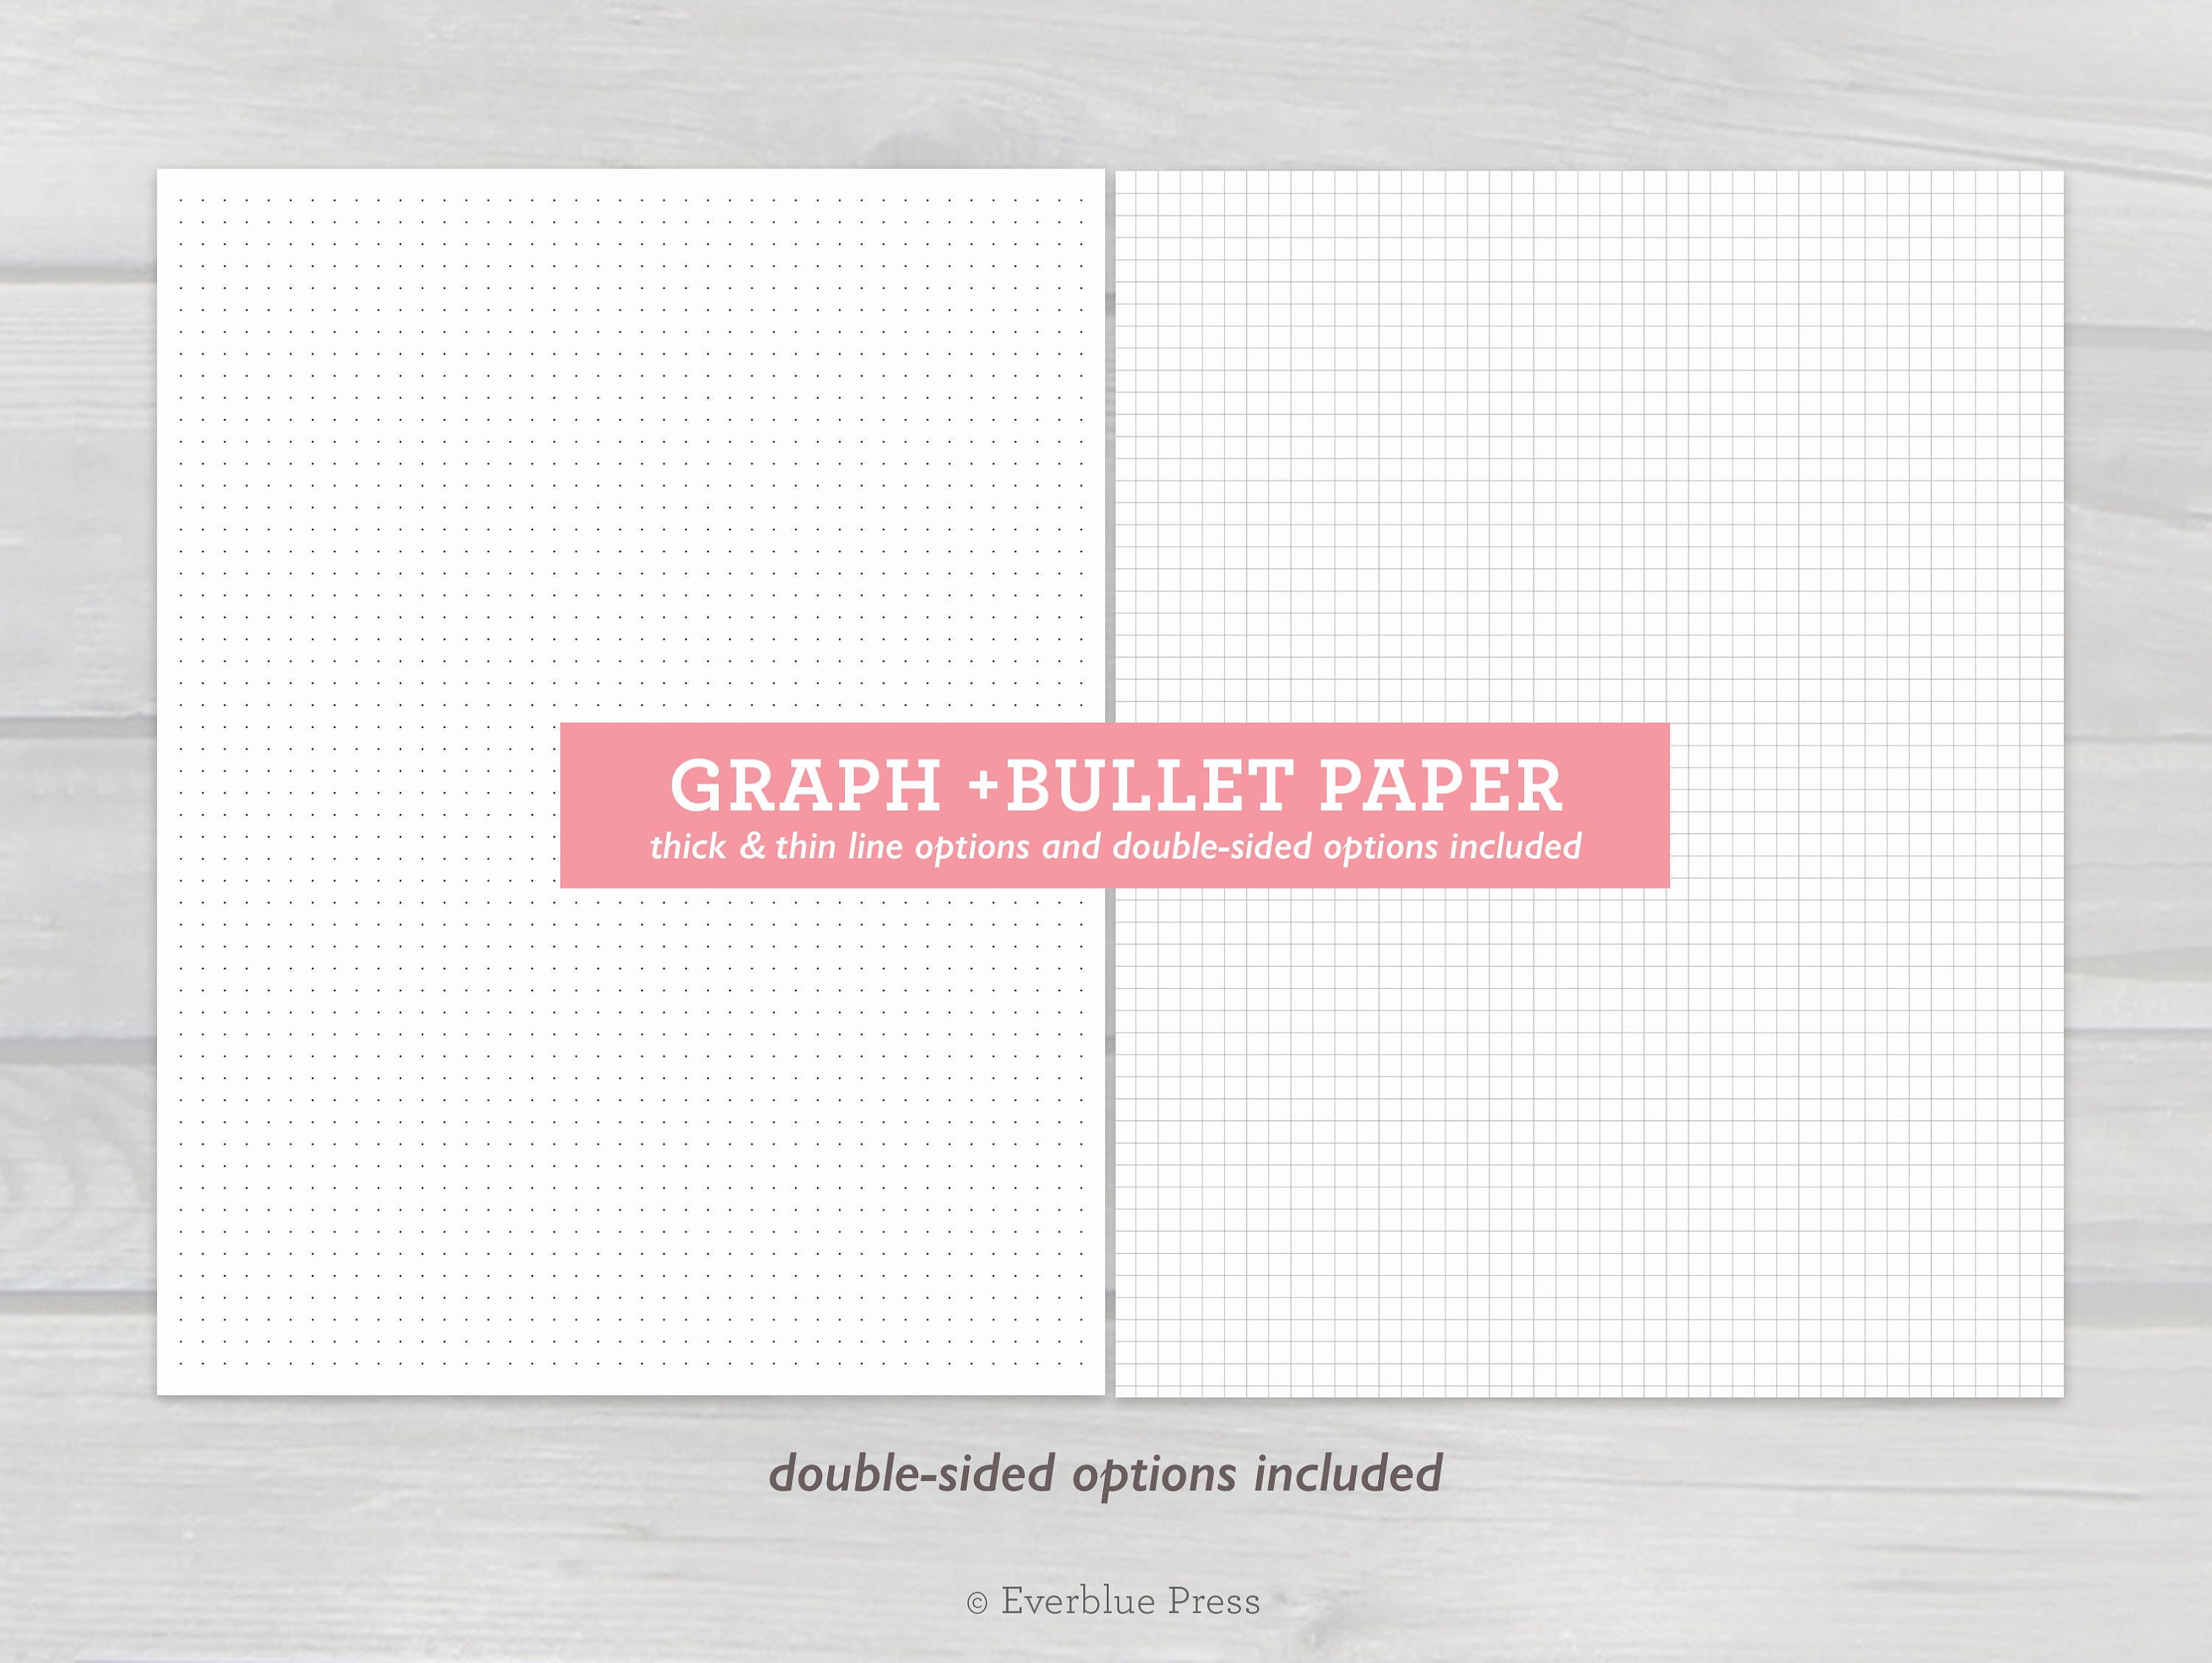 photograph regarding Printable Dot Paper for Bullet Journal identified as Printable Graph Paper and Bullet Magazine Dot Paper, 8.5x11\